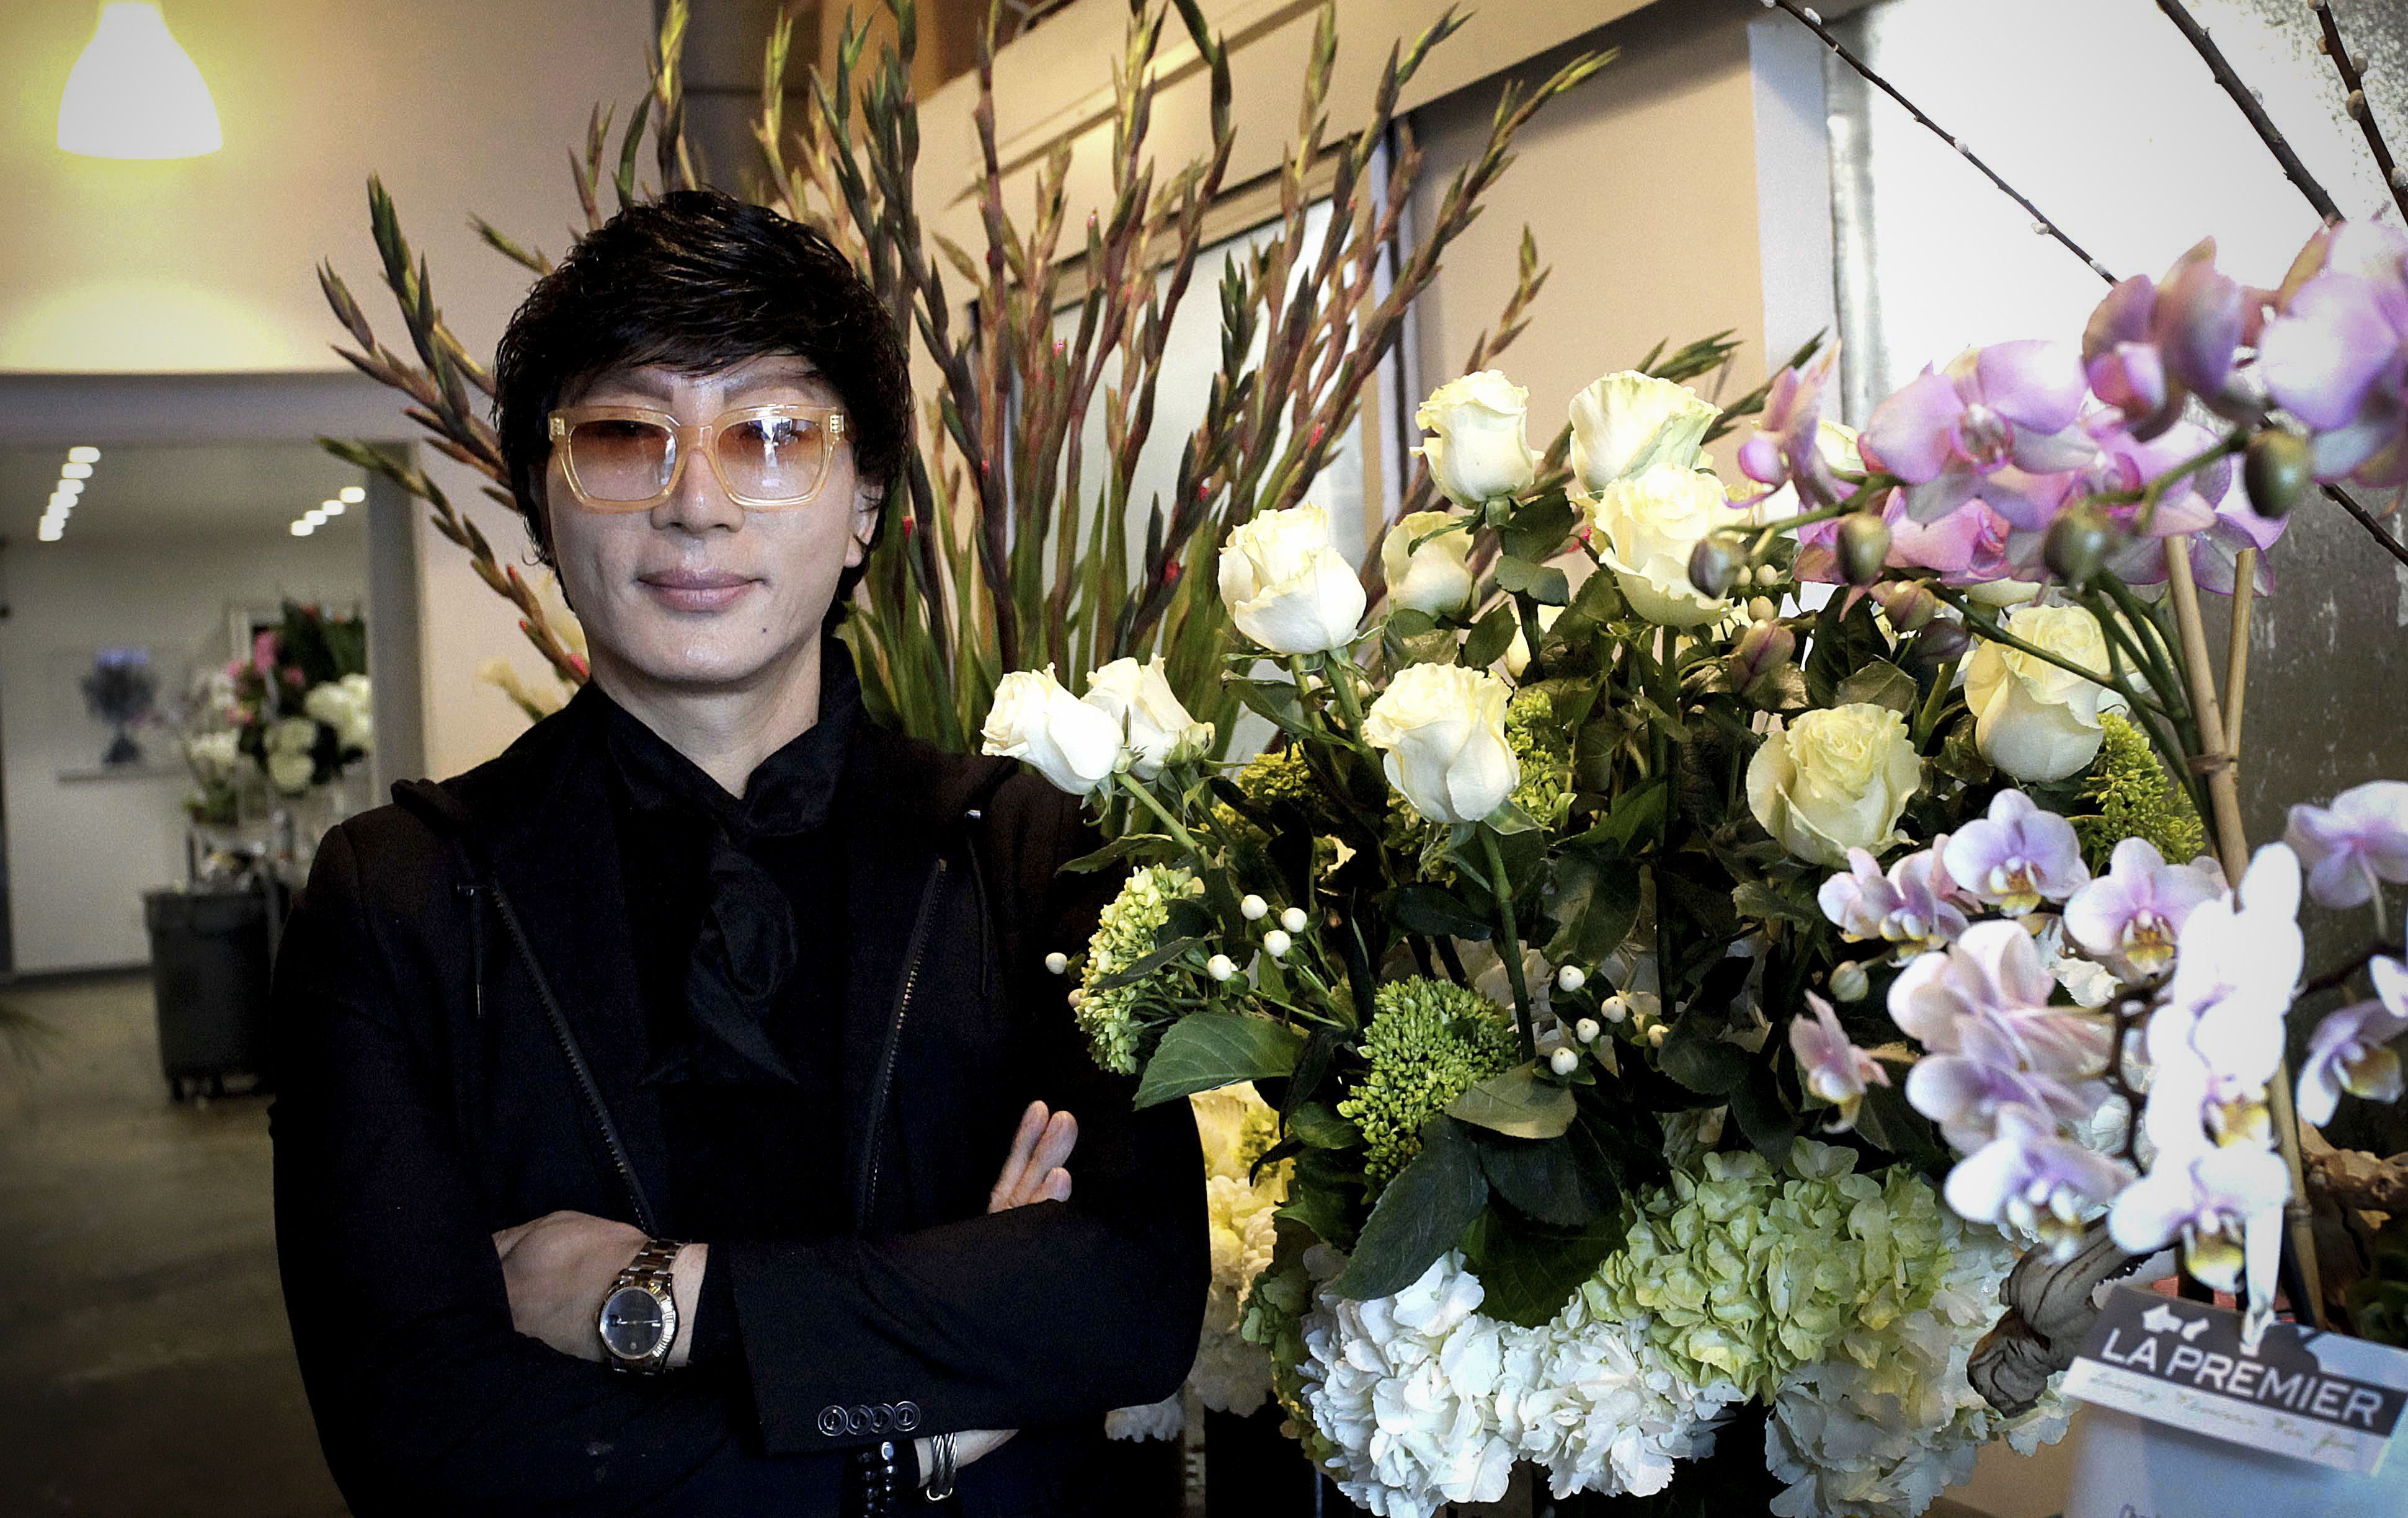 A Pionate Wedding Planner Innately Talented Florist And Wide Businessman The Multifaceted Do It All Man Is Kevin Lee Who Was In Charge Of